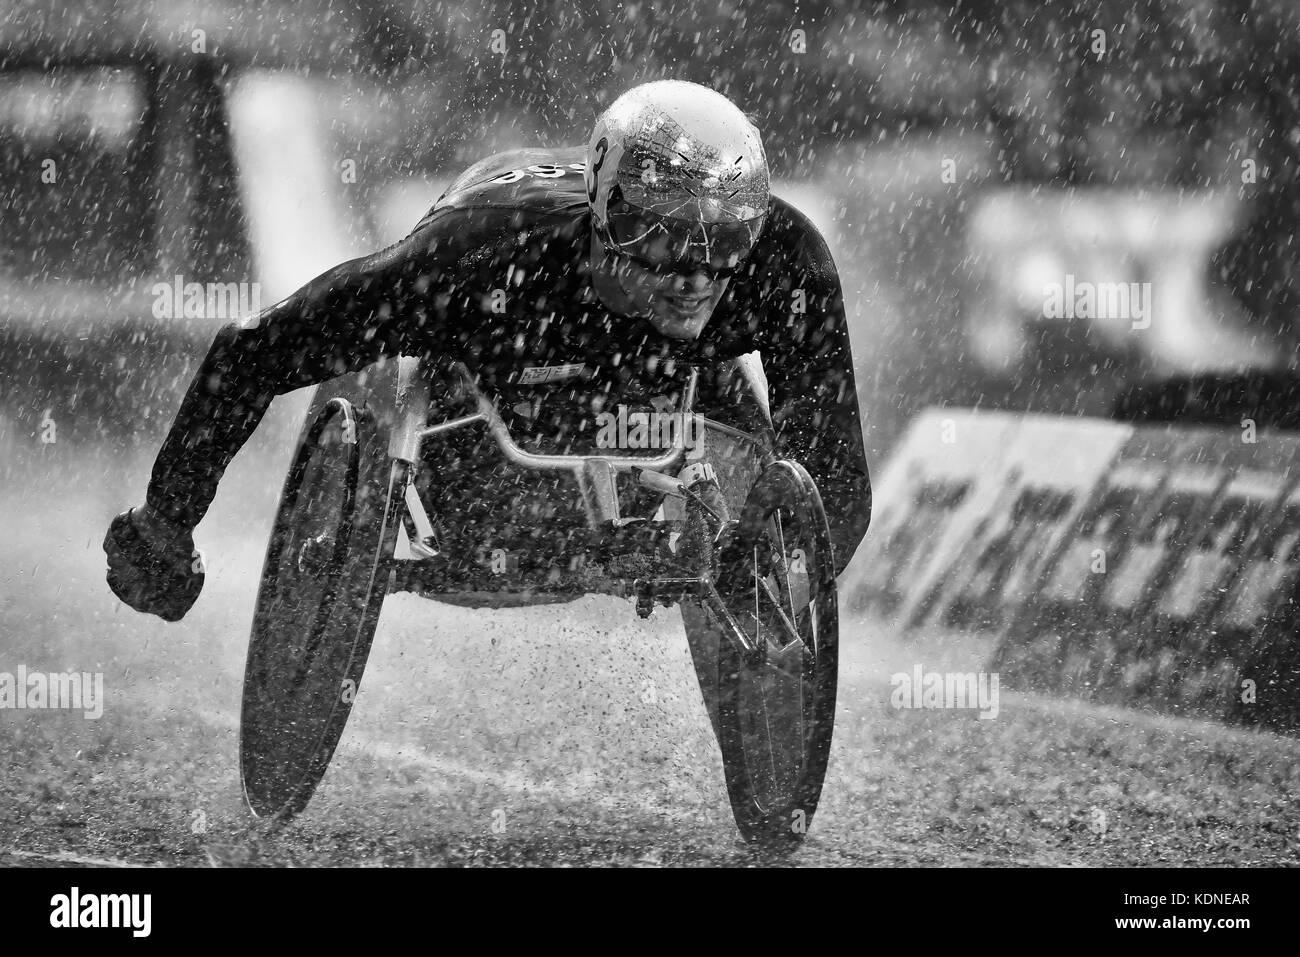 Marcel Hug wheelchair athlete competing in wet 5000m T54 final at the World Para Athletics Championships in the Stock Photo